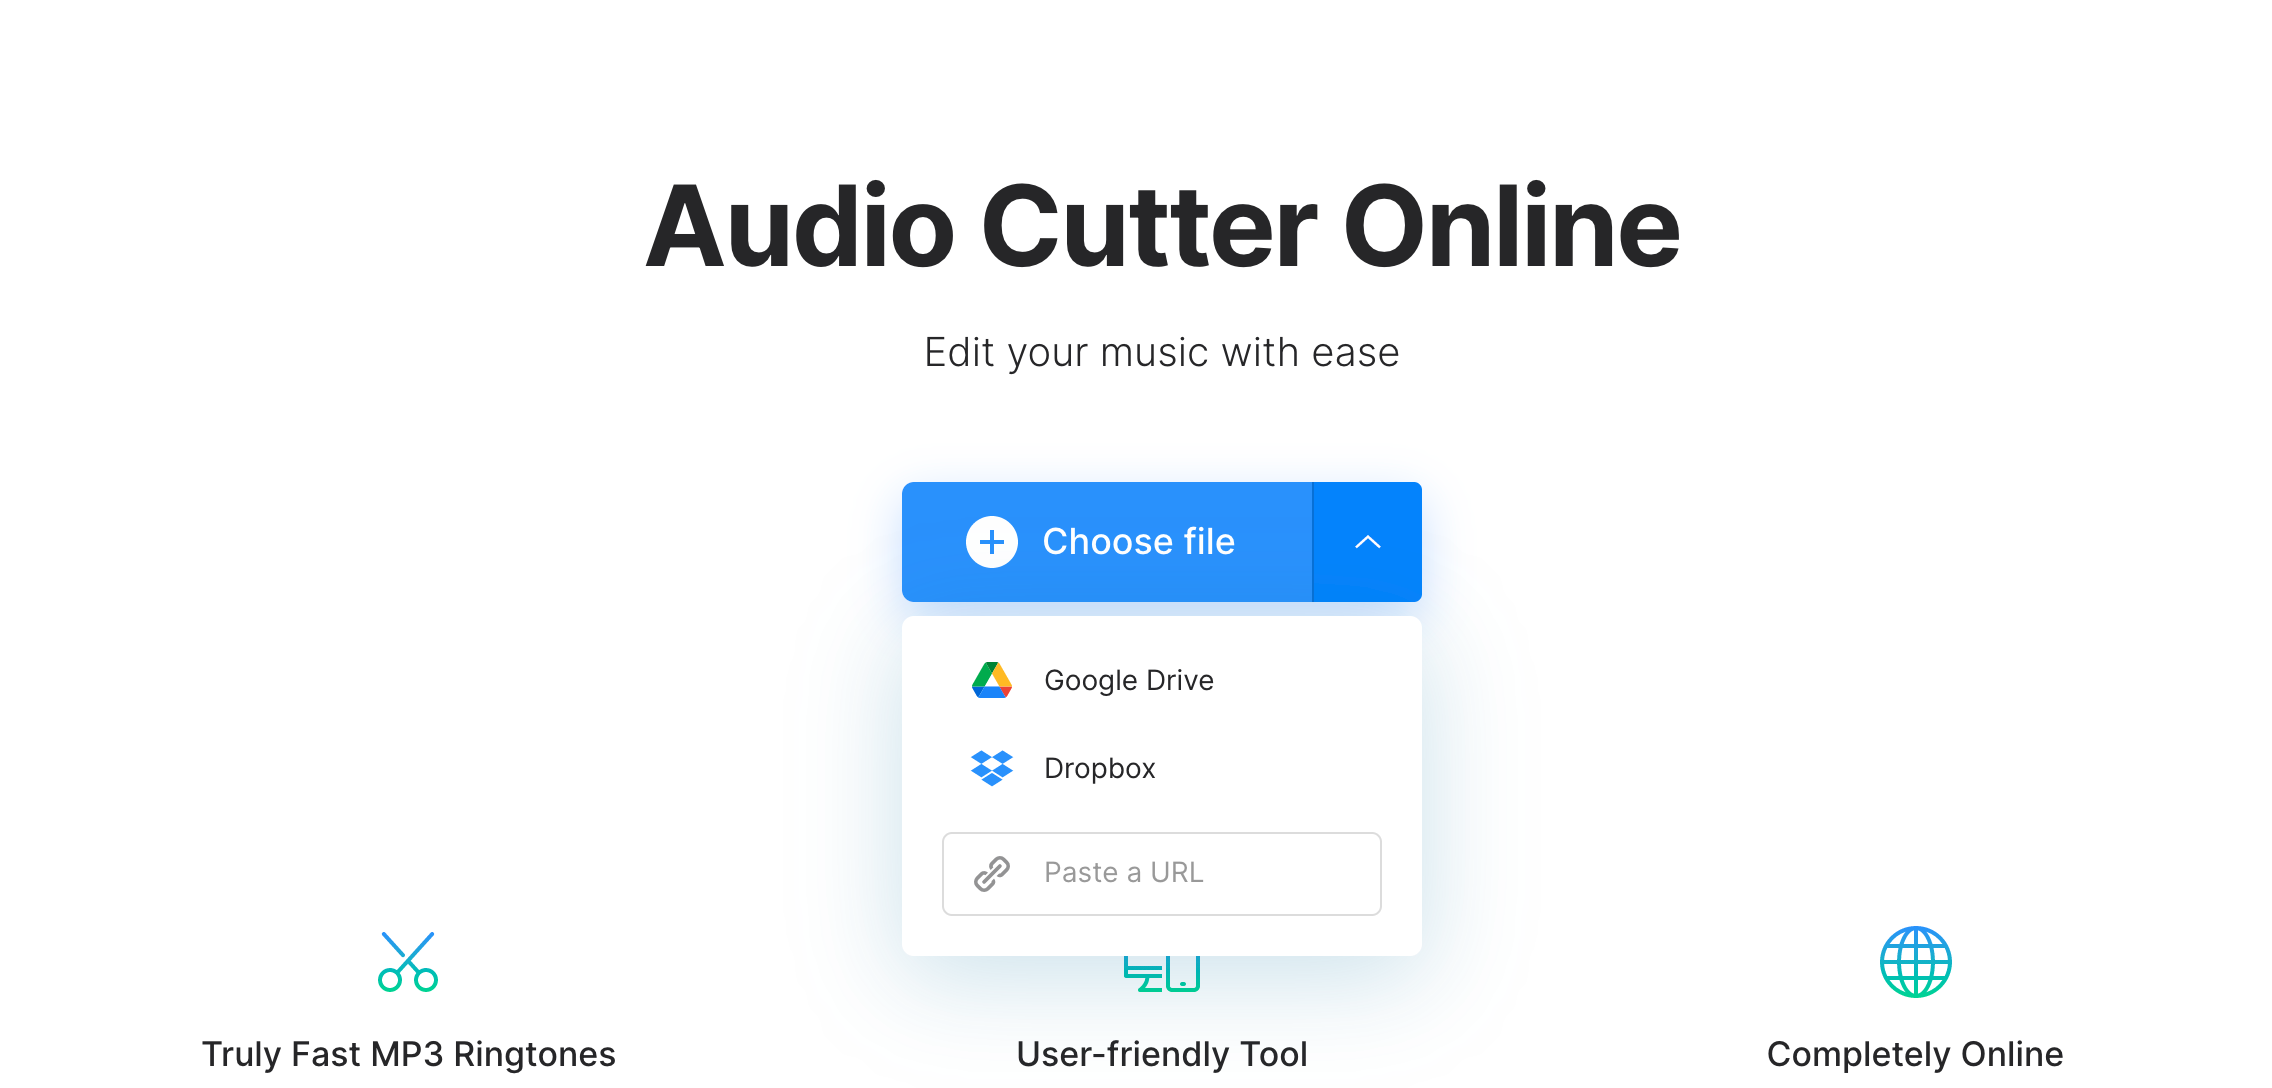 Upload video to convert to audio